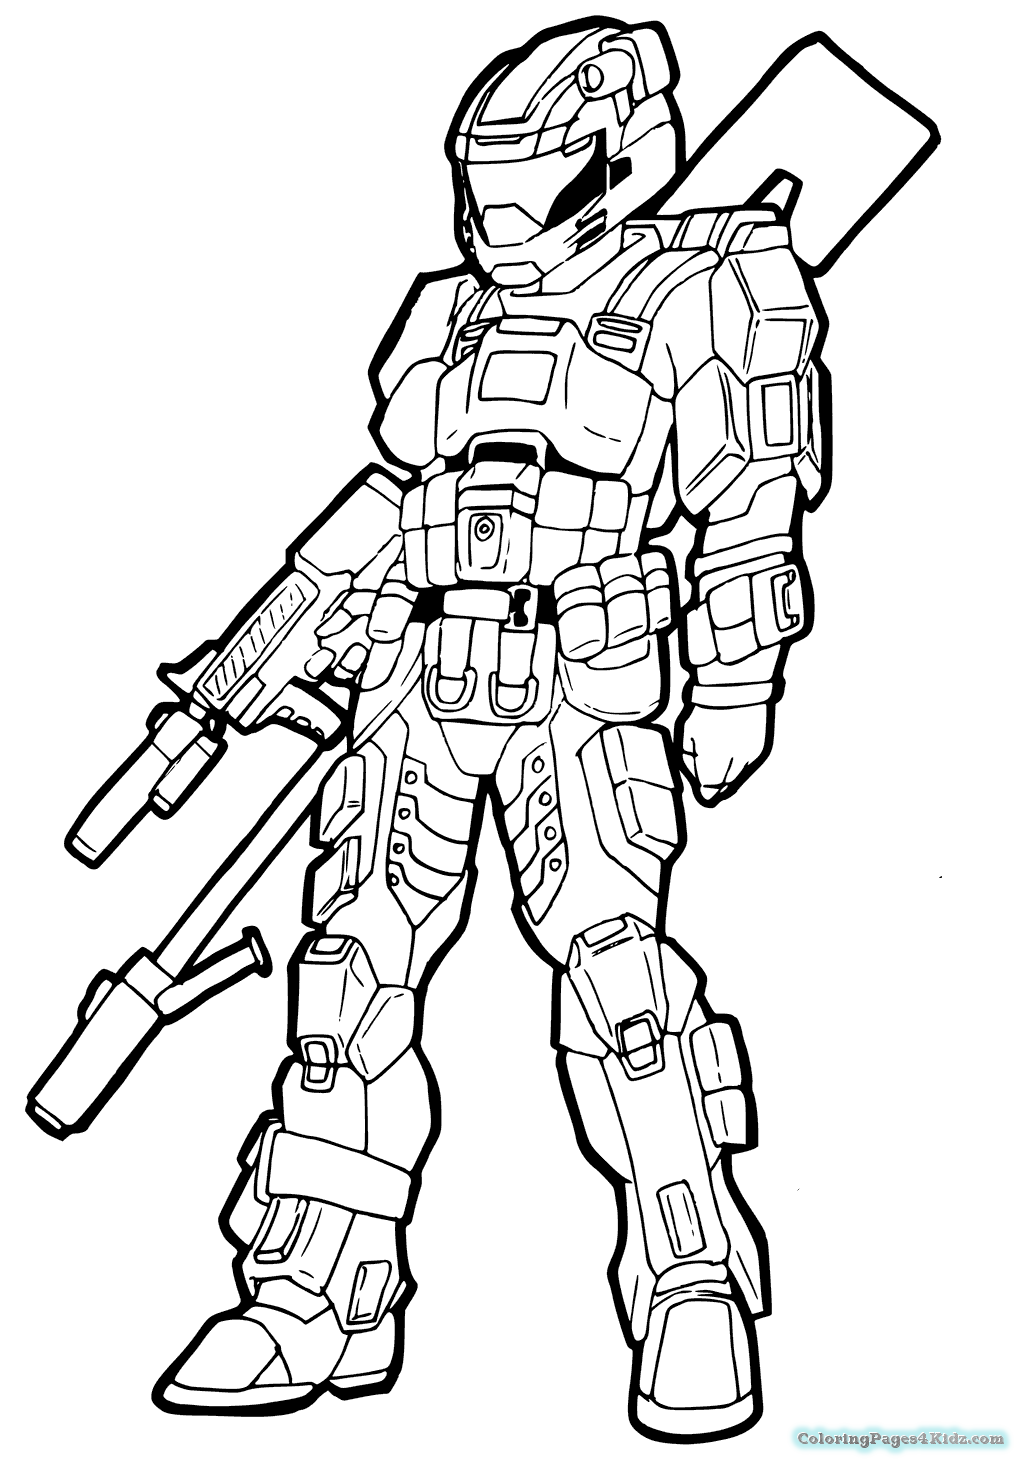 1024x1468 Halo Coloring Pages Coloring Pages For Kids